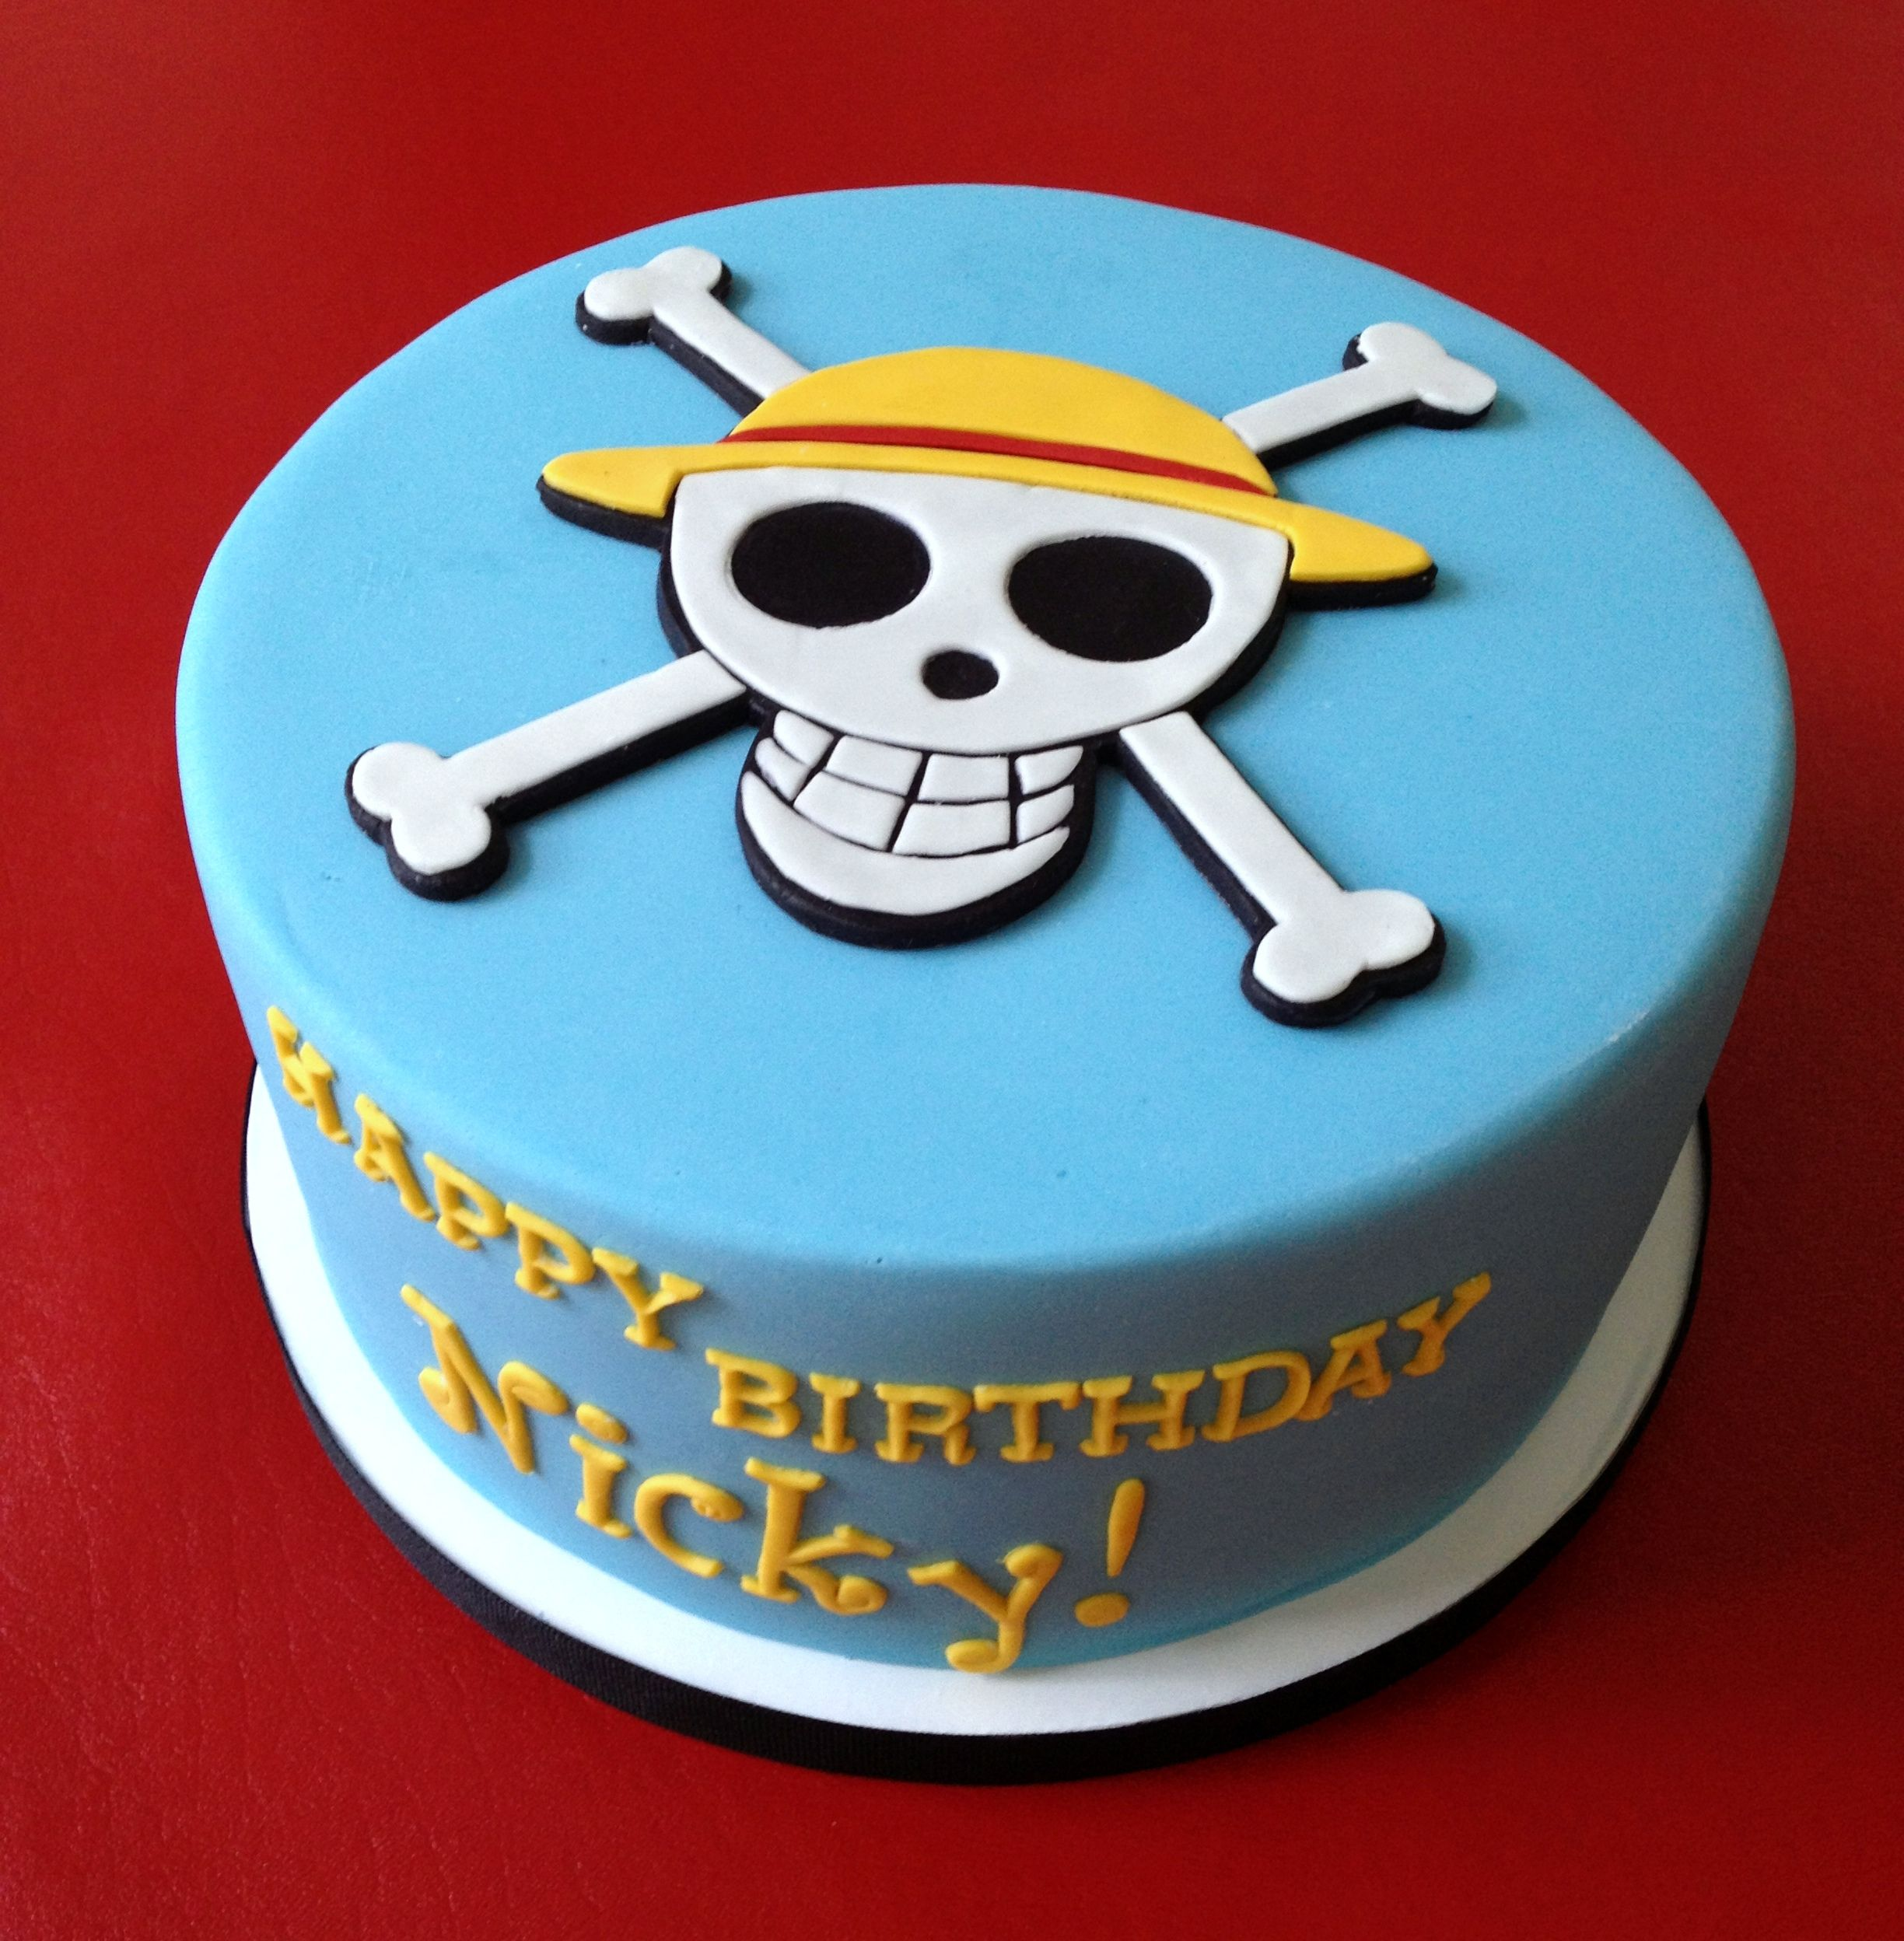 One Piece Anime Cake! All marshmallow fondant. Recipe at